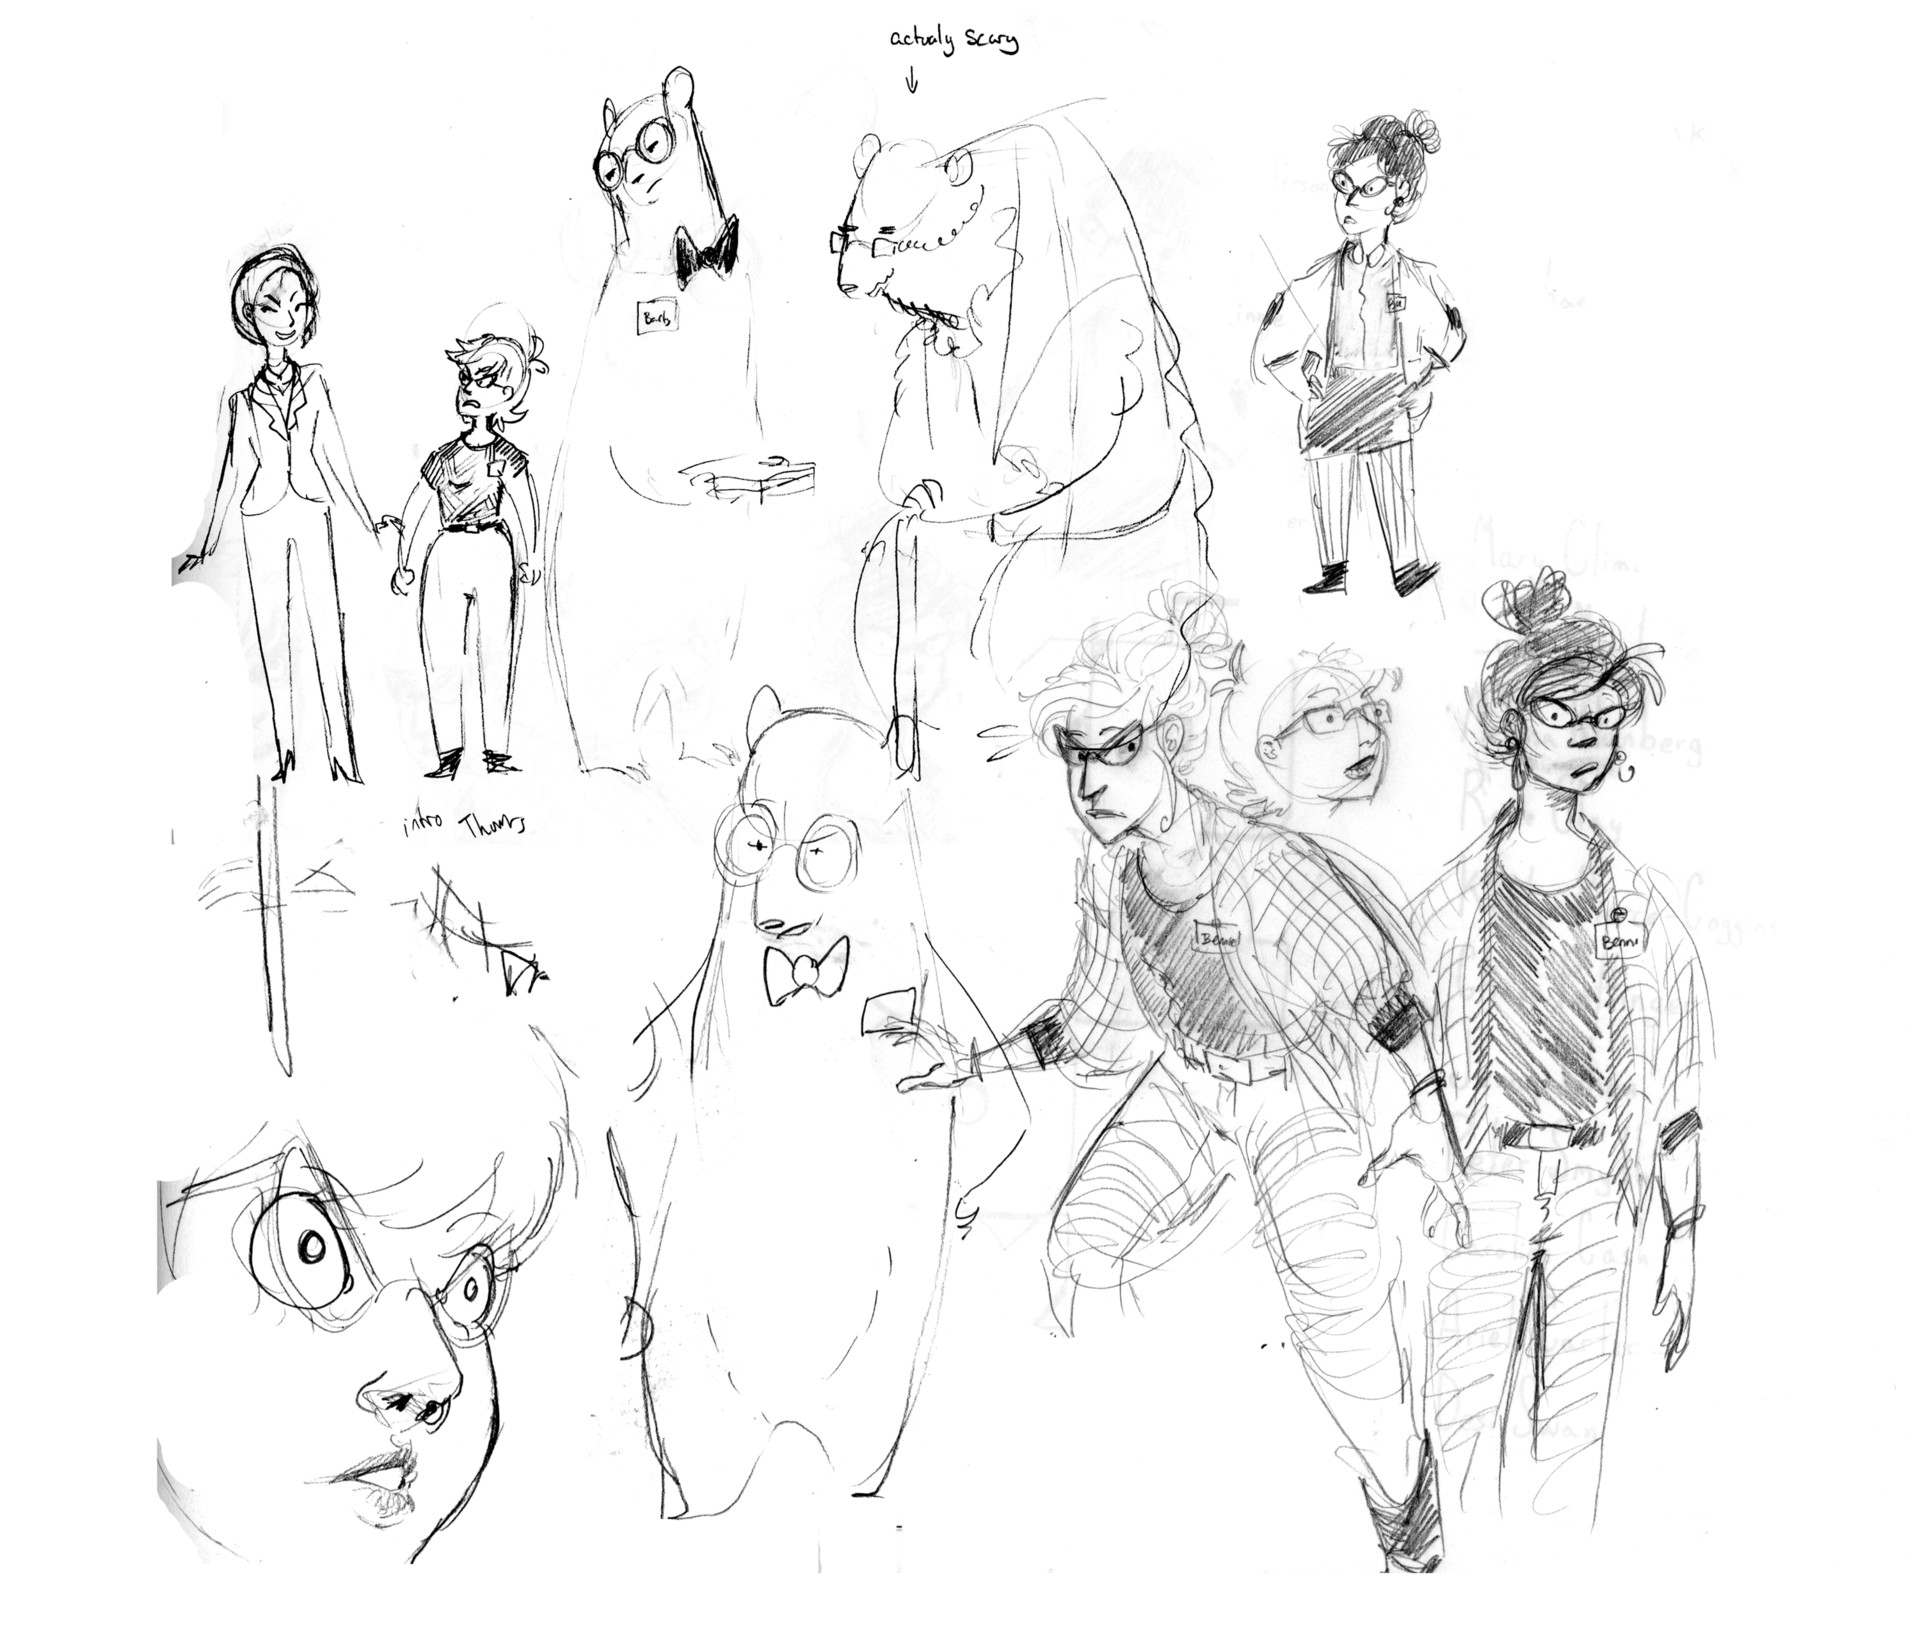 Erin hoover sketches2